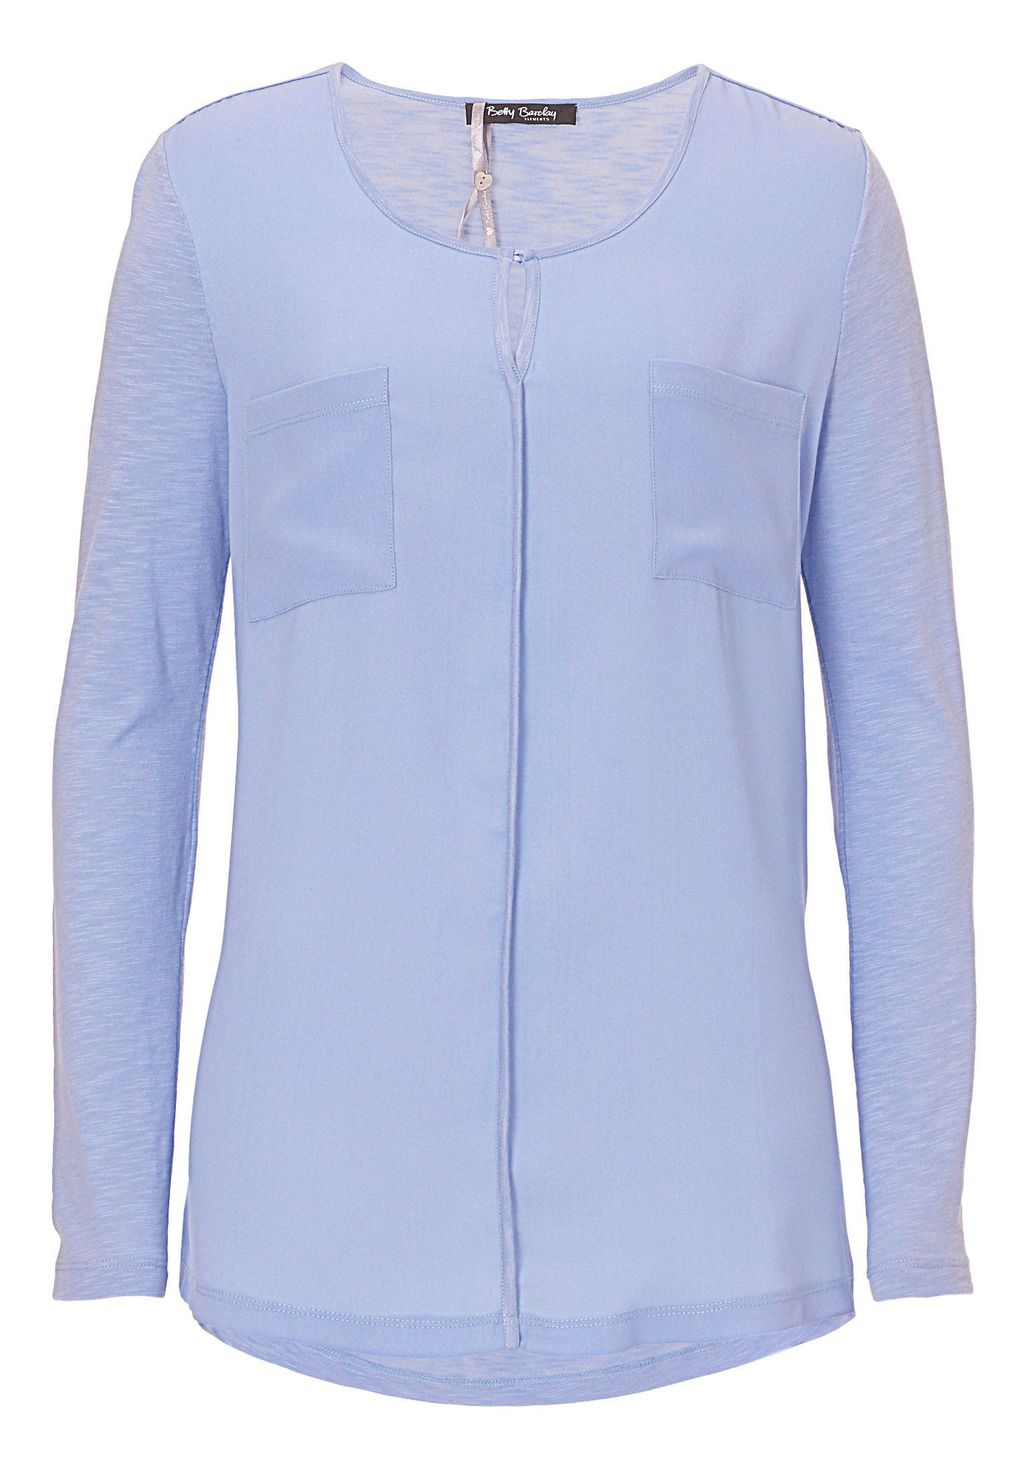 Crepe And Jersey Top, Blue - neckline: round neck; pattern: plain; predominant colour: pale blue; occasions: casual; length: standard; style: top; fibres: cotton - mix; fit: body skimming; sleeve length: long sleeve; sleeve style: standard; pattern type: fabric; texture group: jersey - stretchy/drapey; season: a/w 2015